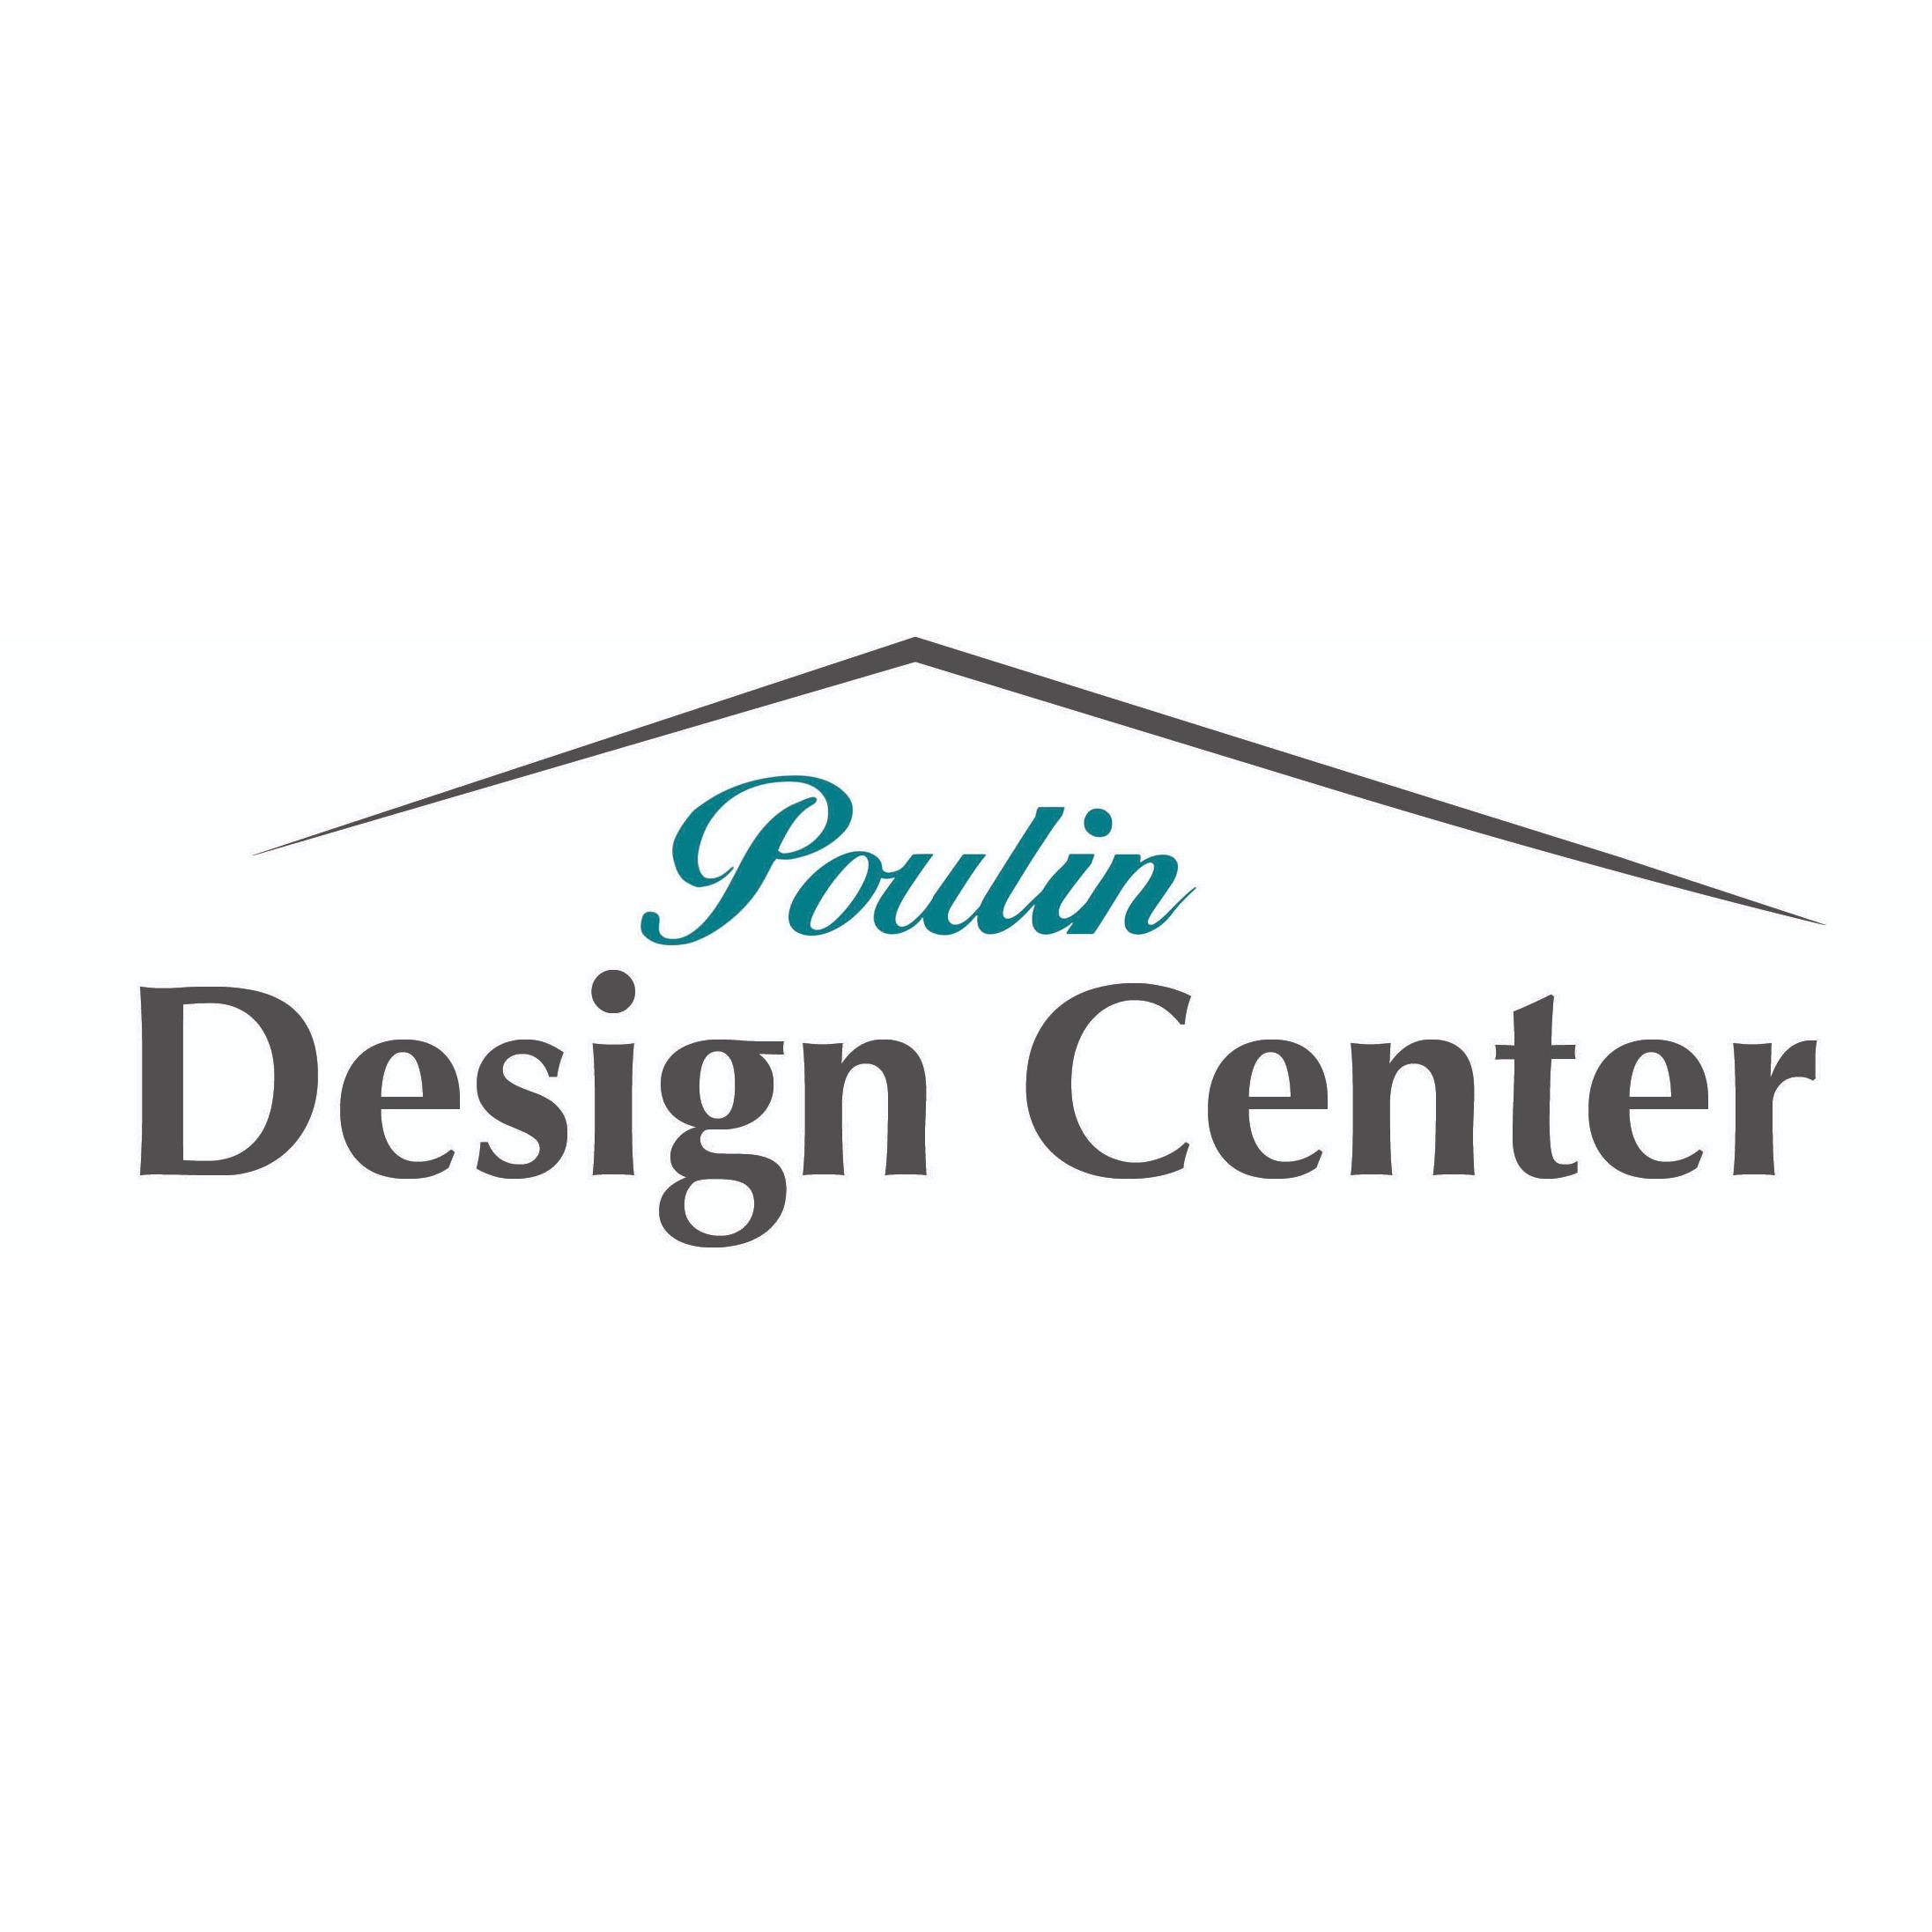 Poulin Design Center image 1